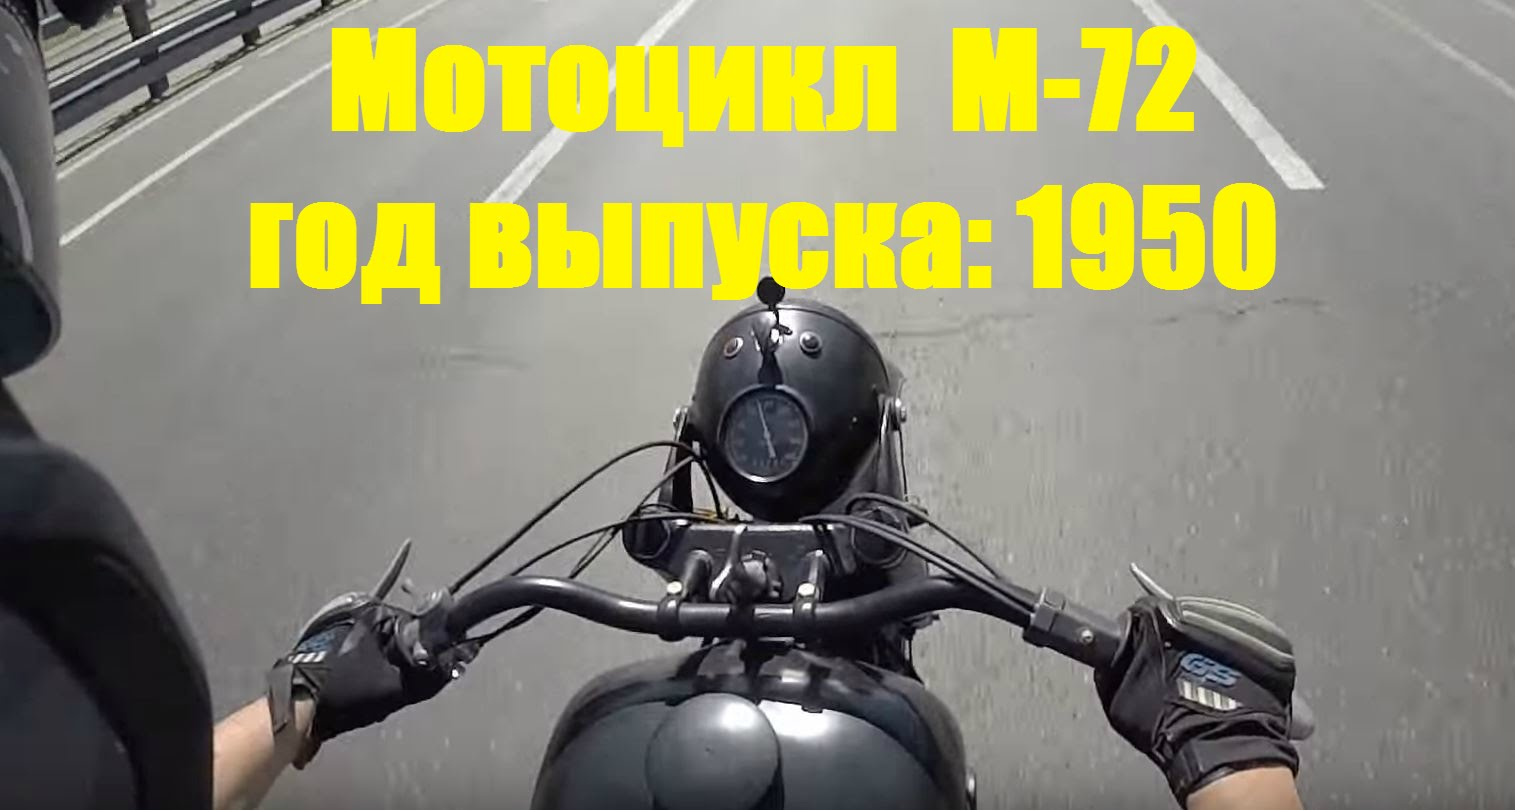 Мотоцикл ИМЗ М-72 1950 года / Russian 64 -years old motorcycle IMZ M-72 test ride